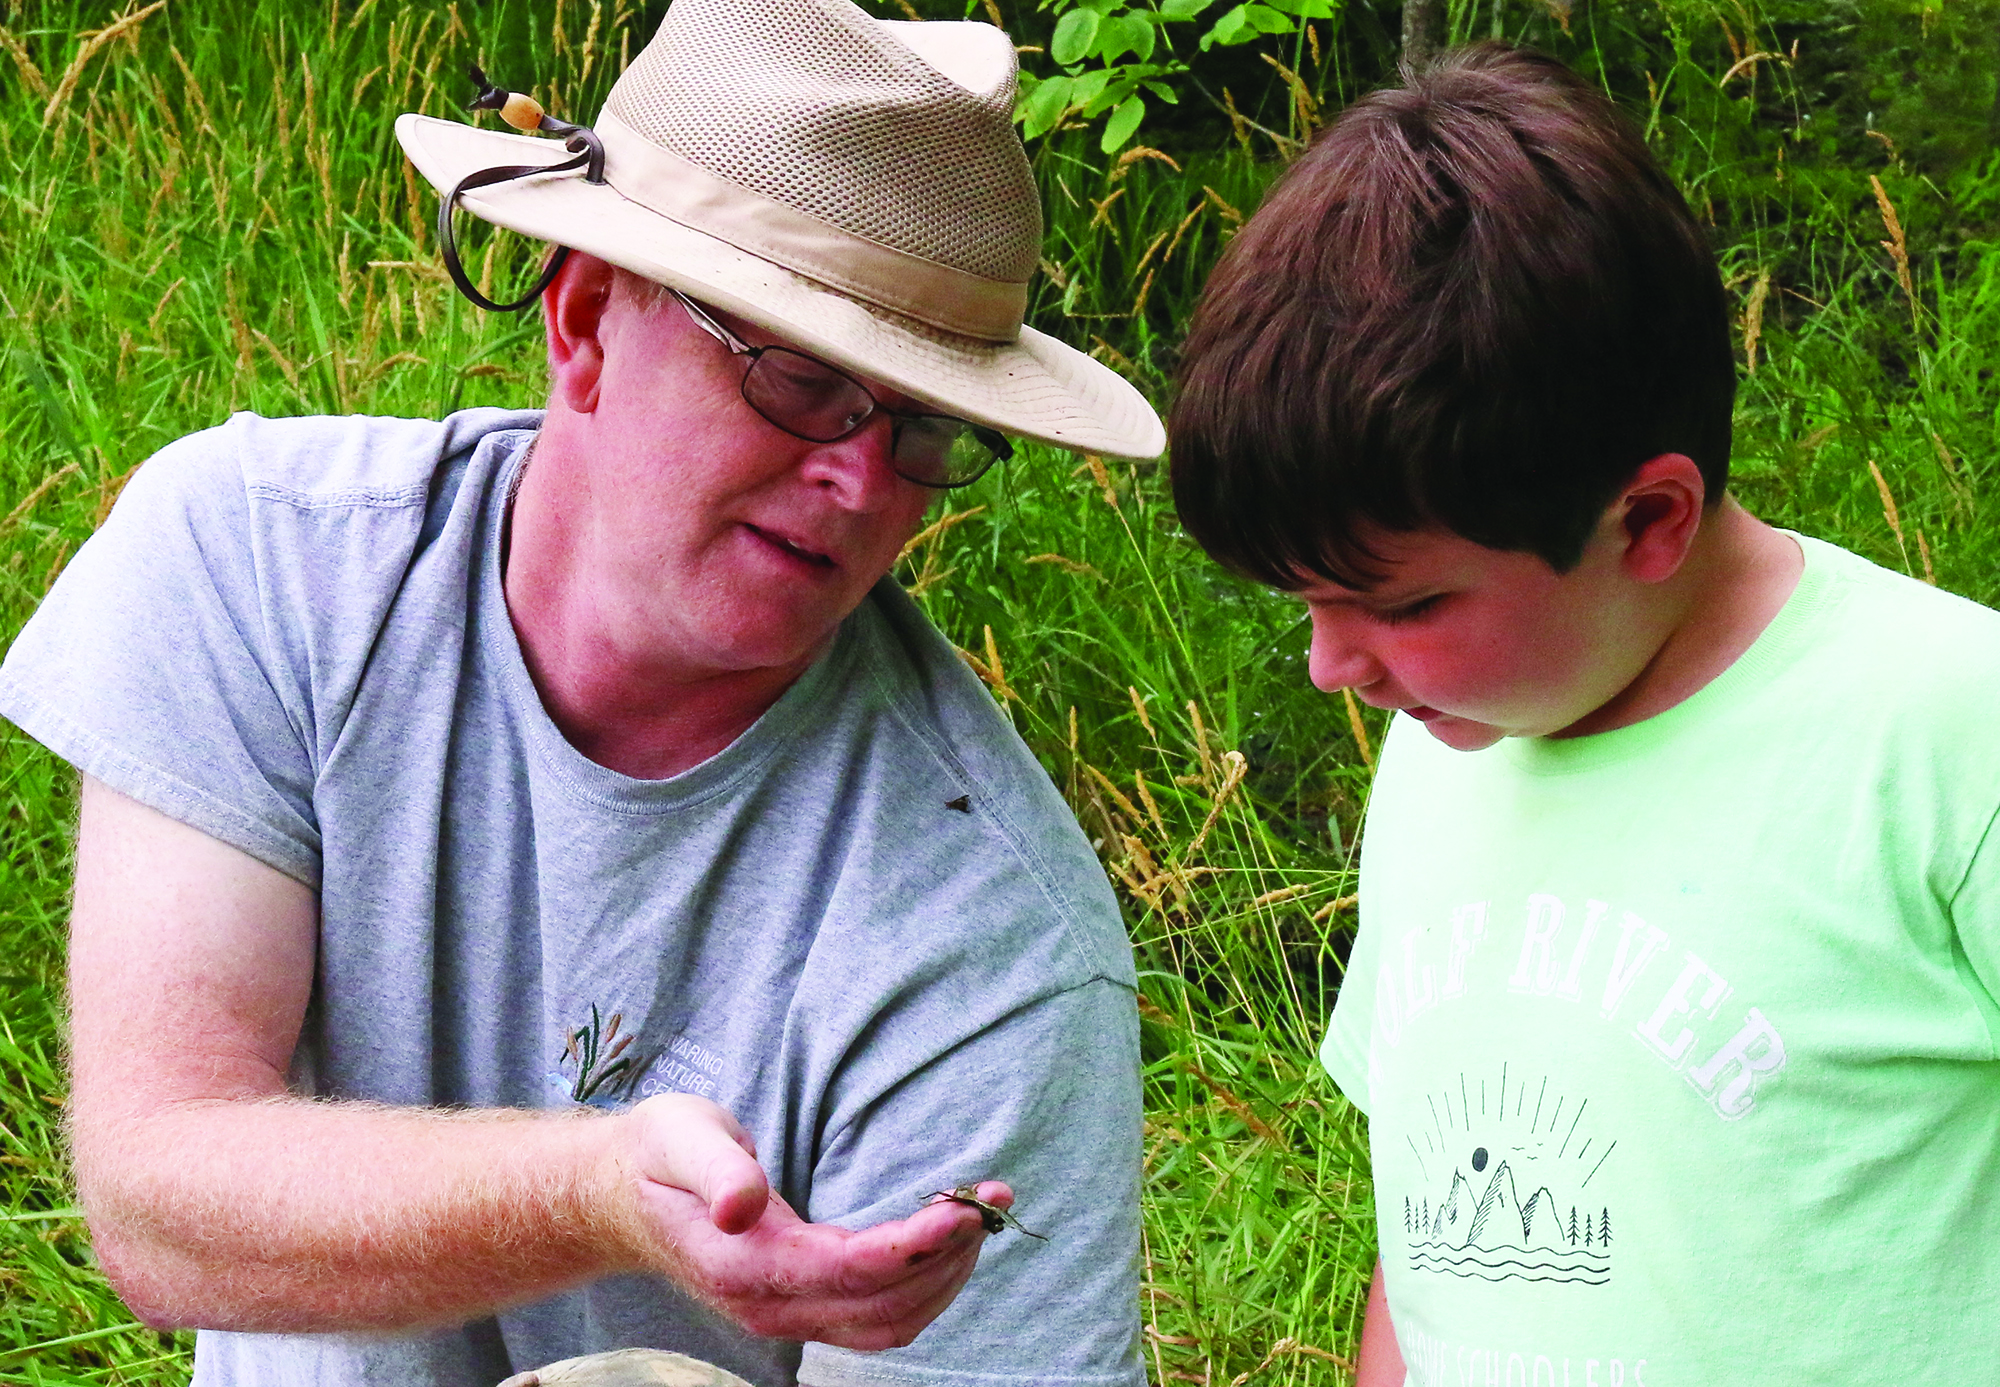 Tim Ewing talks about water insects with Matthew Briggs at Camp Creepy Crawly Critters at the Navarino Nature Center.Carol Ryczek   NEW Media